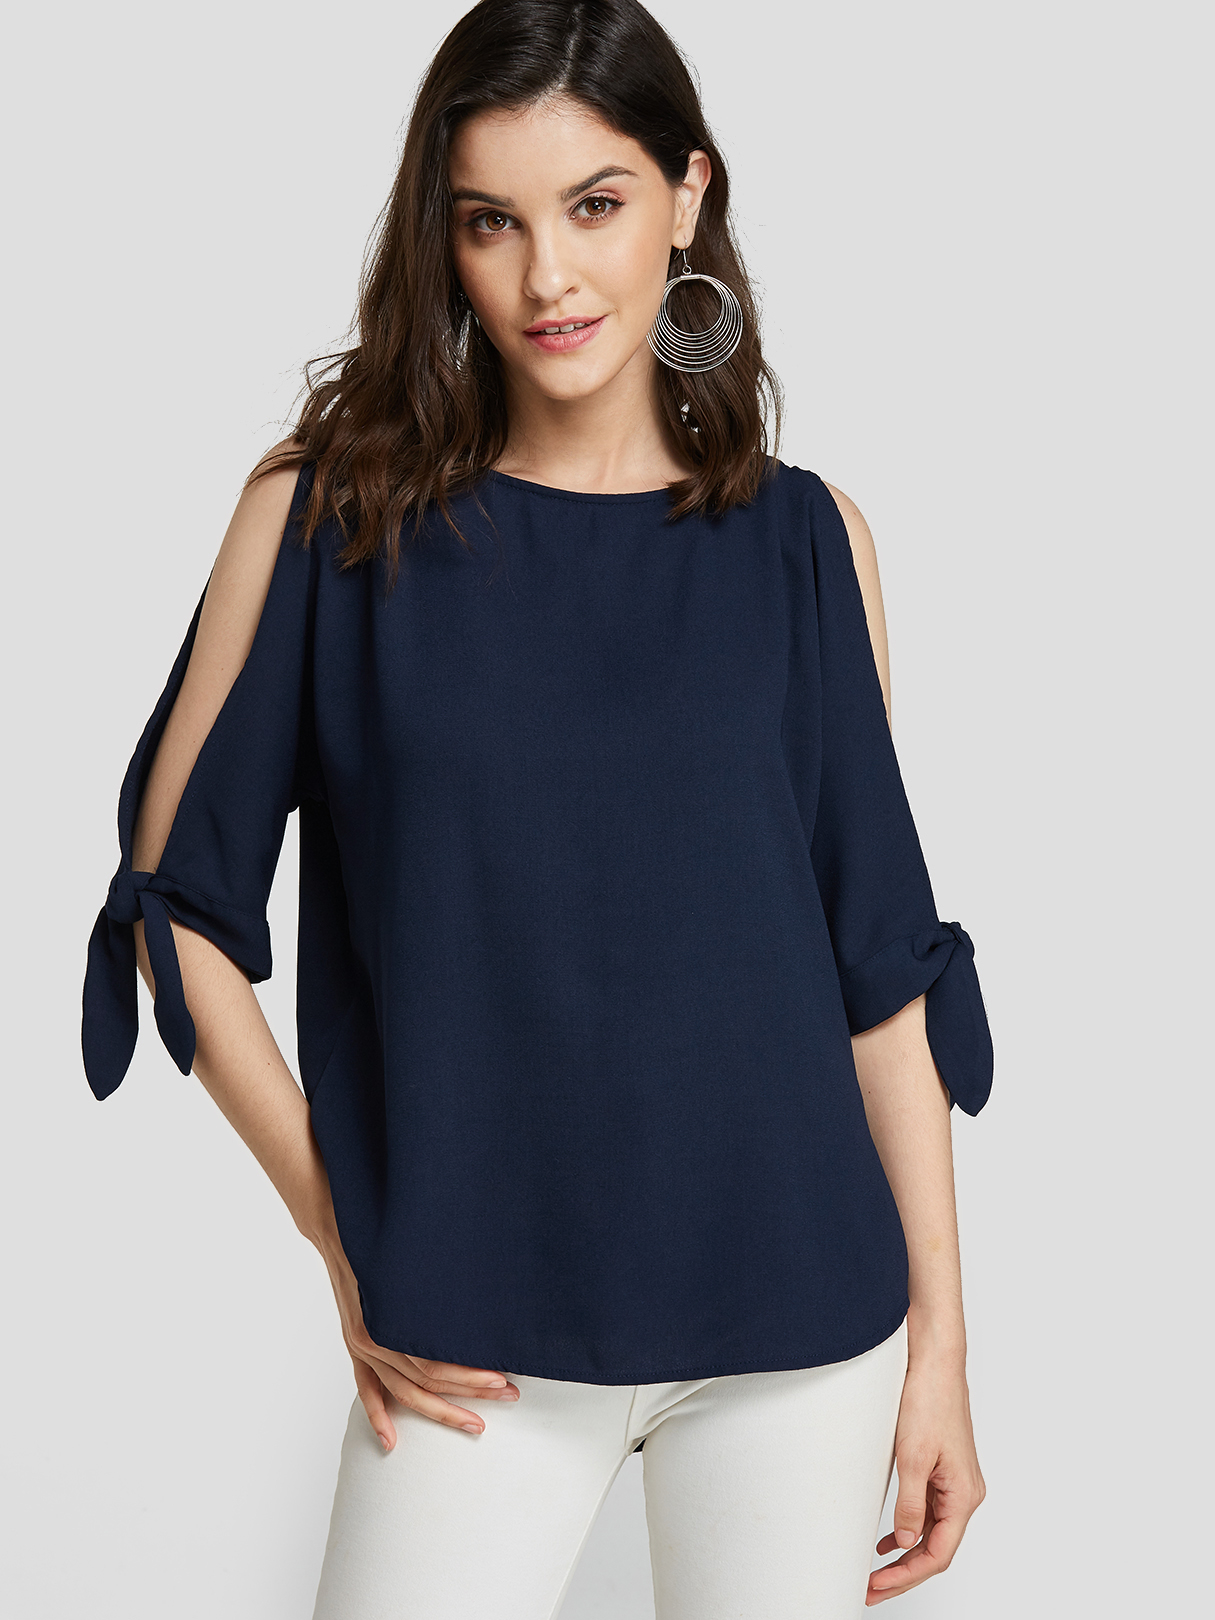 Navy Self-tie Design Round Neck Cut Out Sleeves Blouse